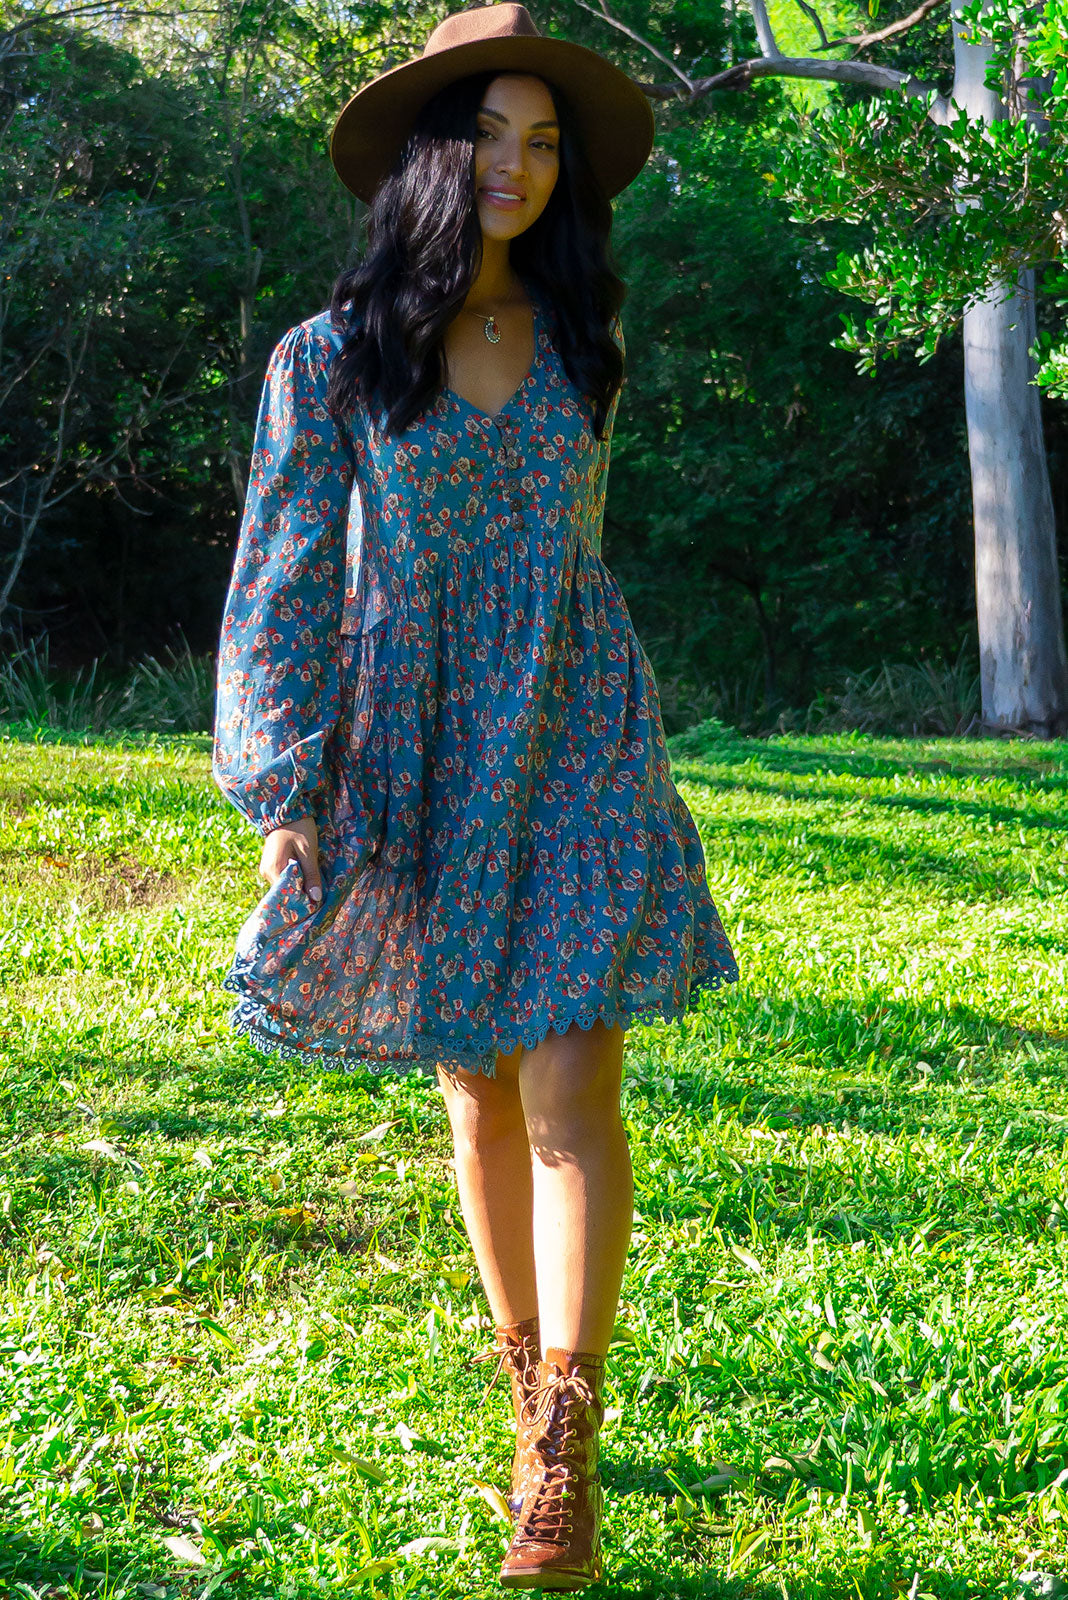 The Woodrose Maleny Meadow Dress is a relaxed fit dress featuring functional button front chest, V-neck, sleeve cuffs are elasticated, side pockets, frill hem, slightly longer at back and cotton/rayon blend in smoky blue base with floral print.